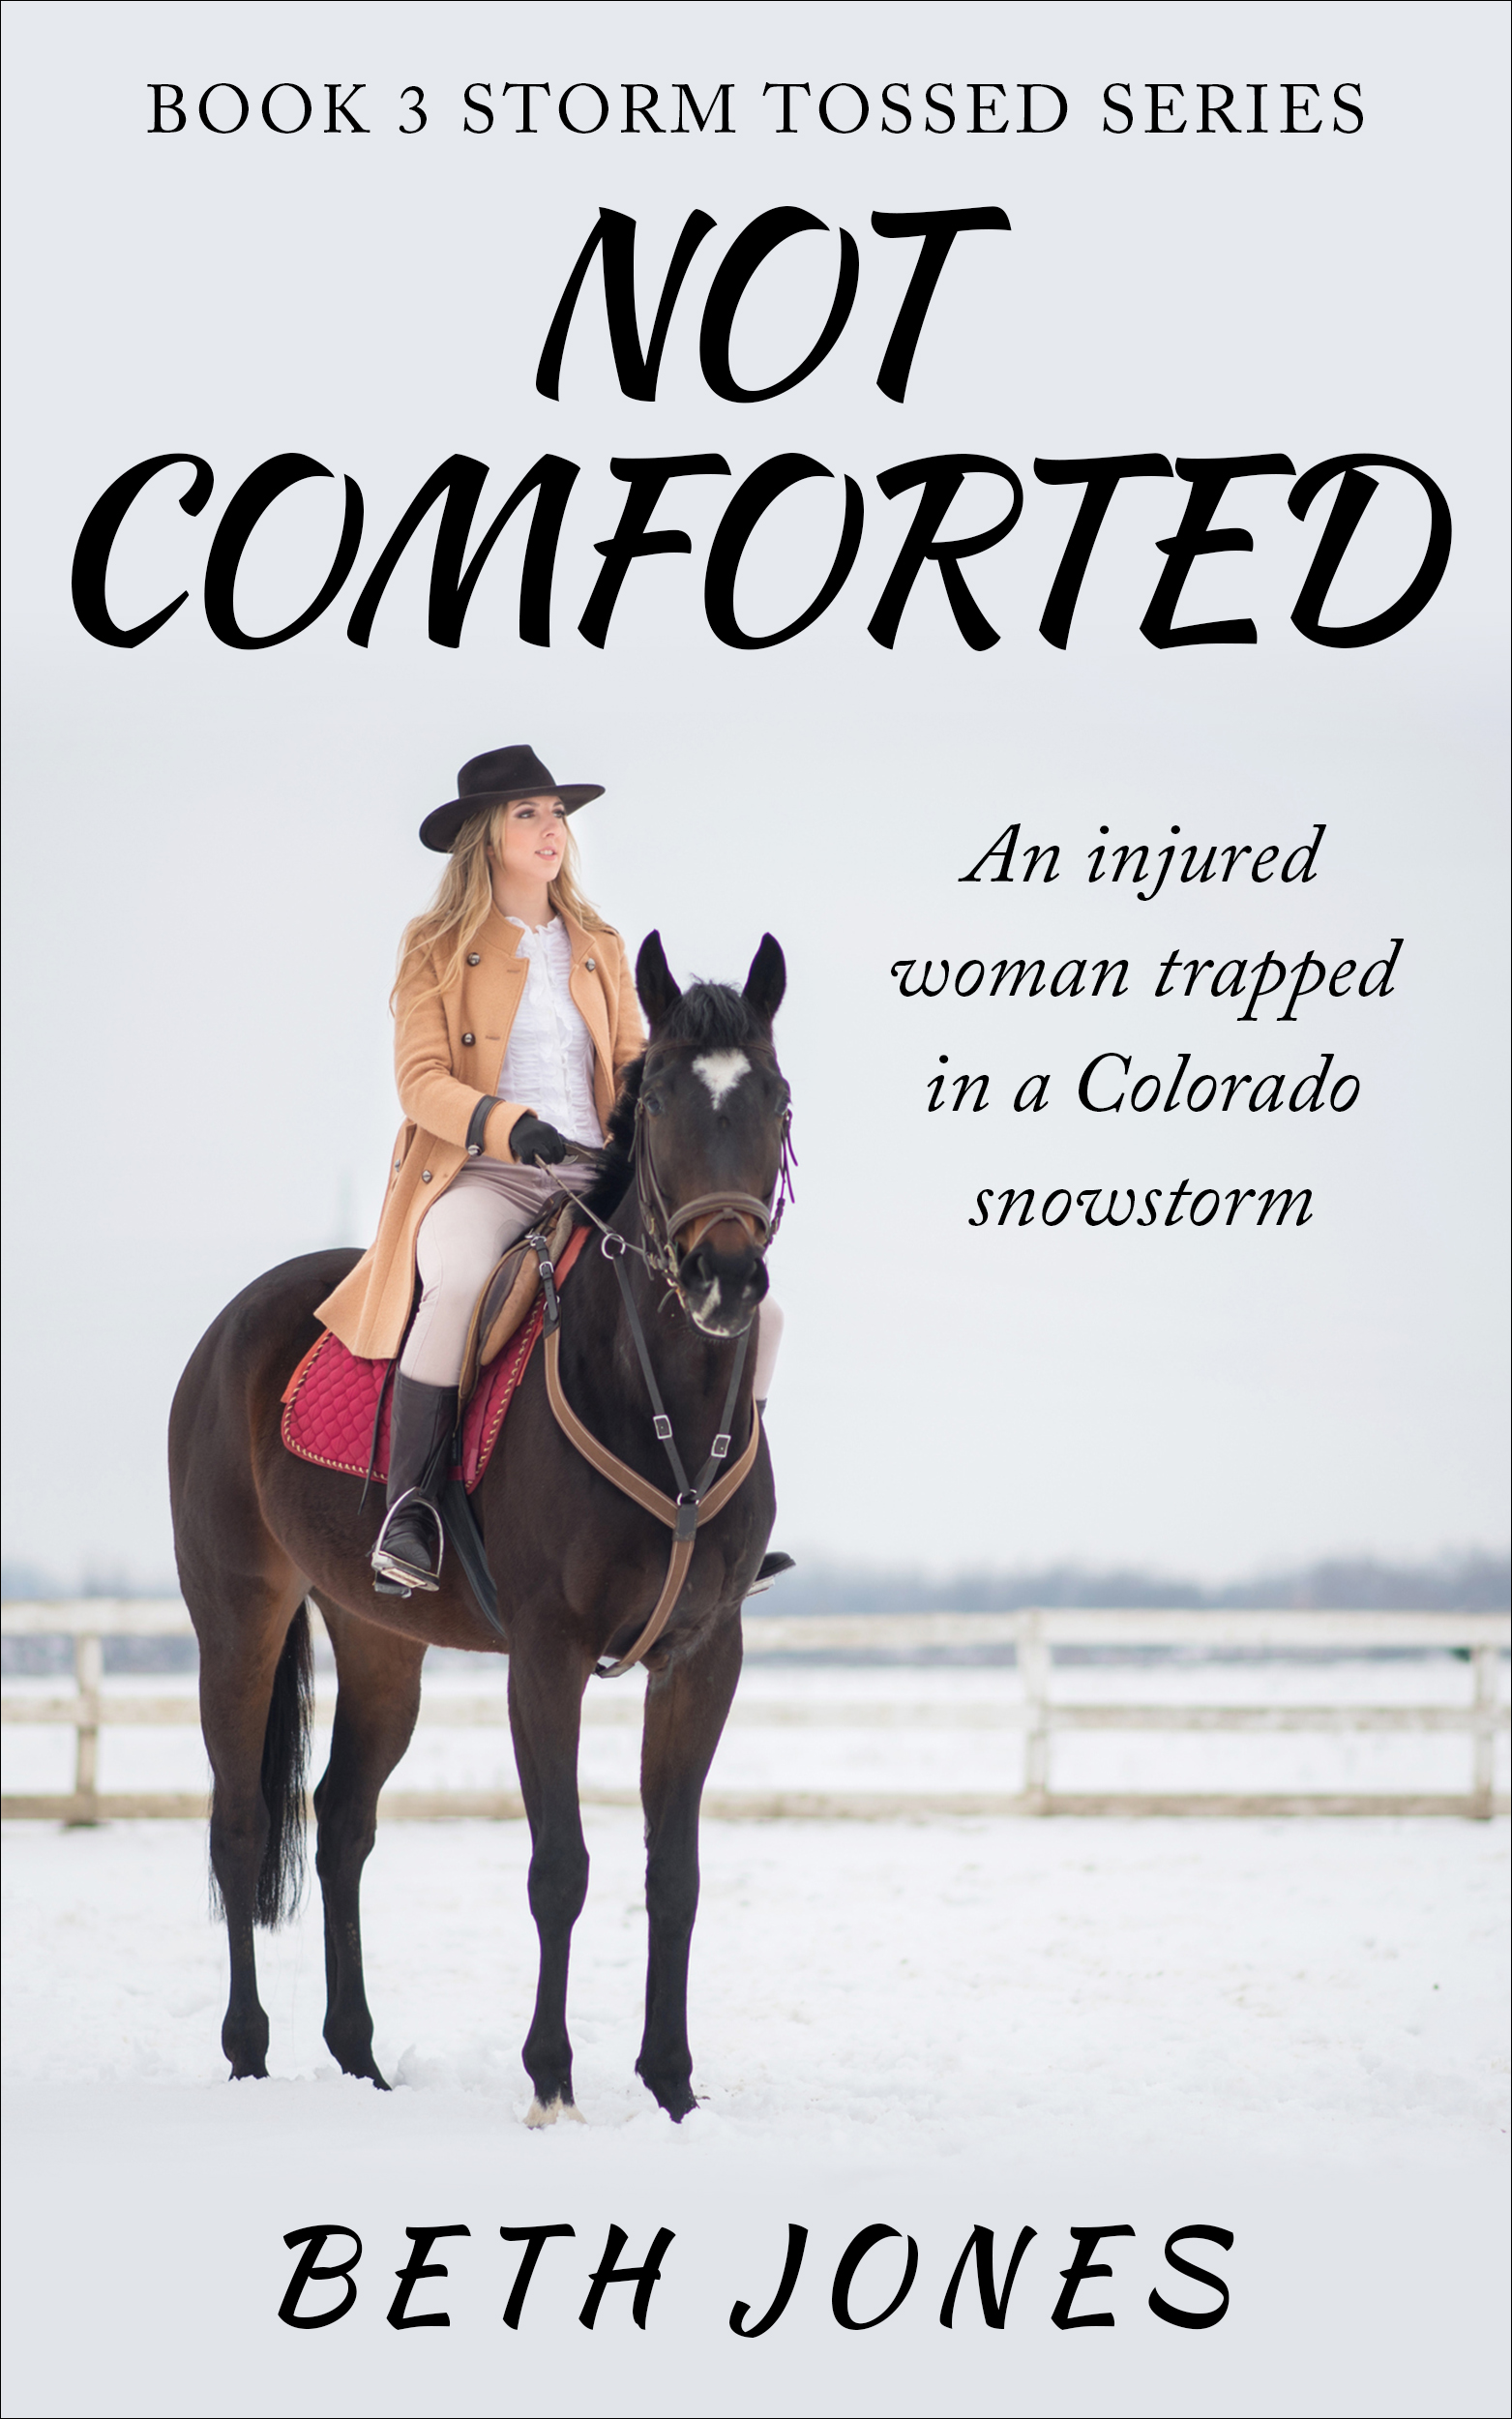 Not Comforted: An injured woman in a Colorado snowstorm